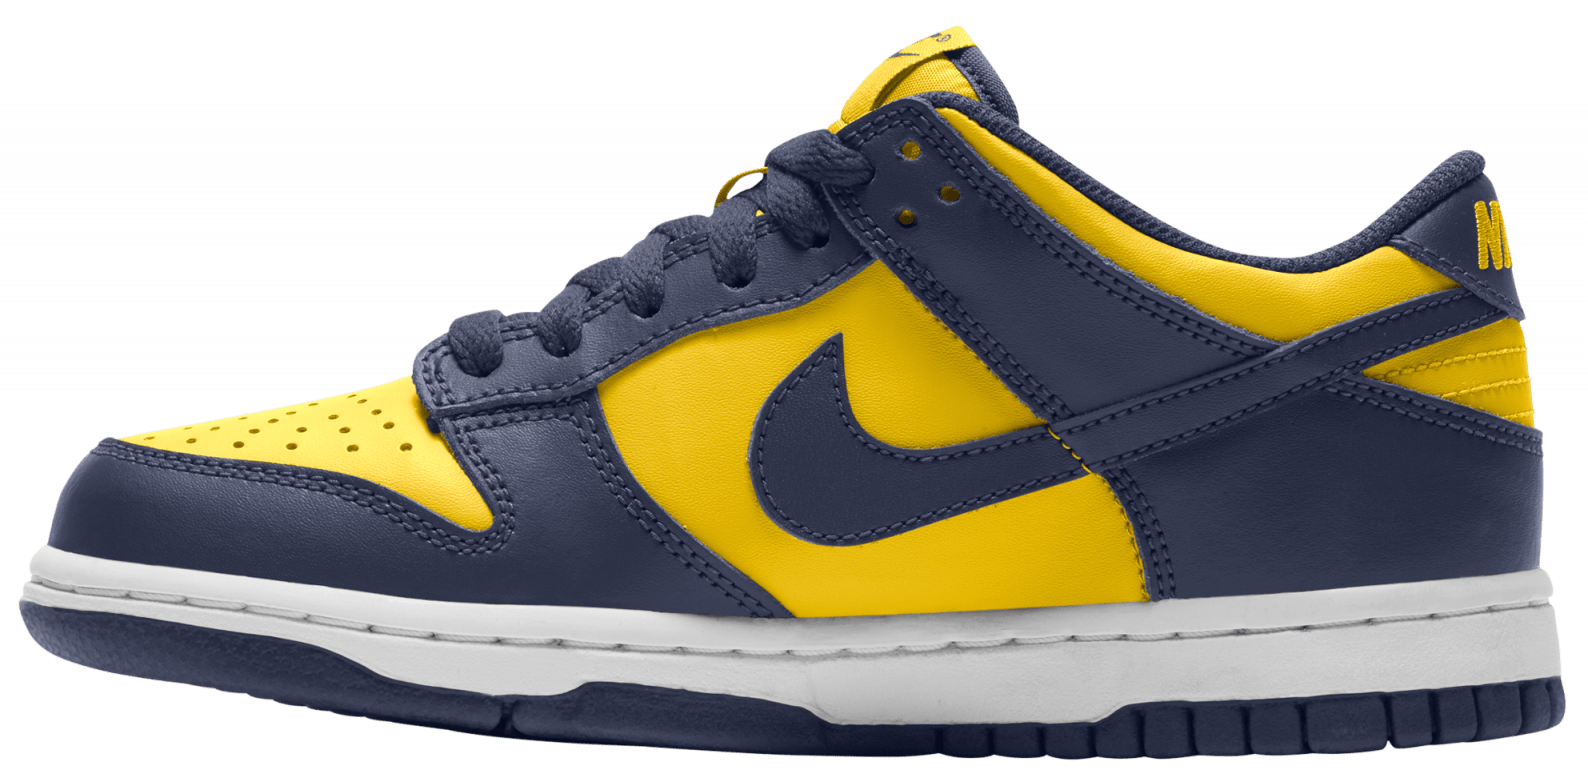 Nike Dunk Low GS 'Michigan' 2021 Medial